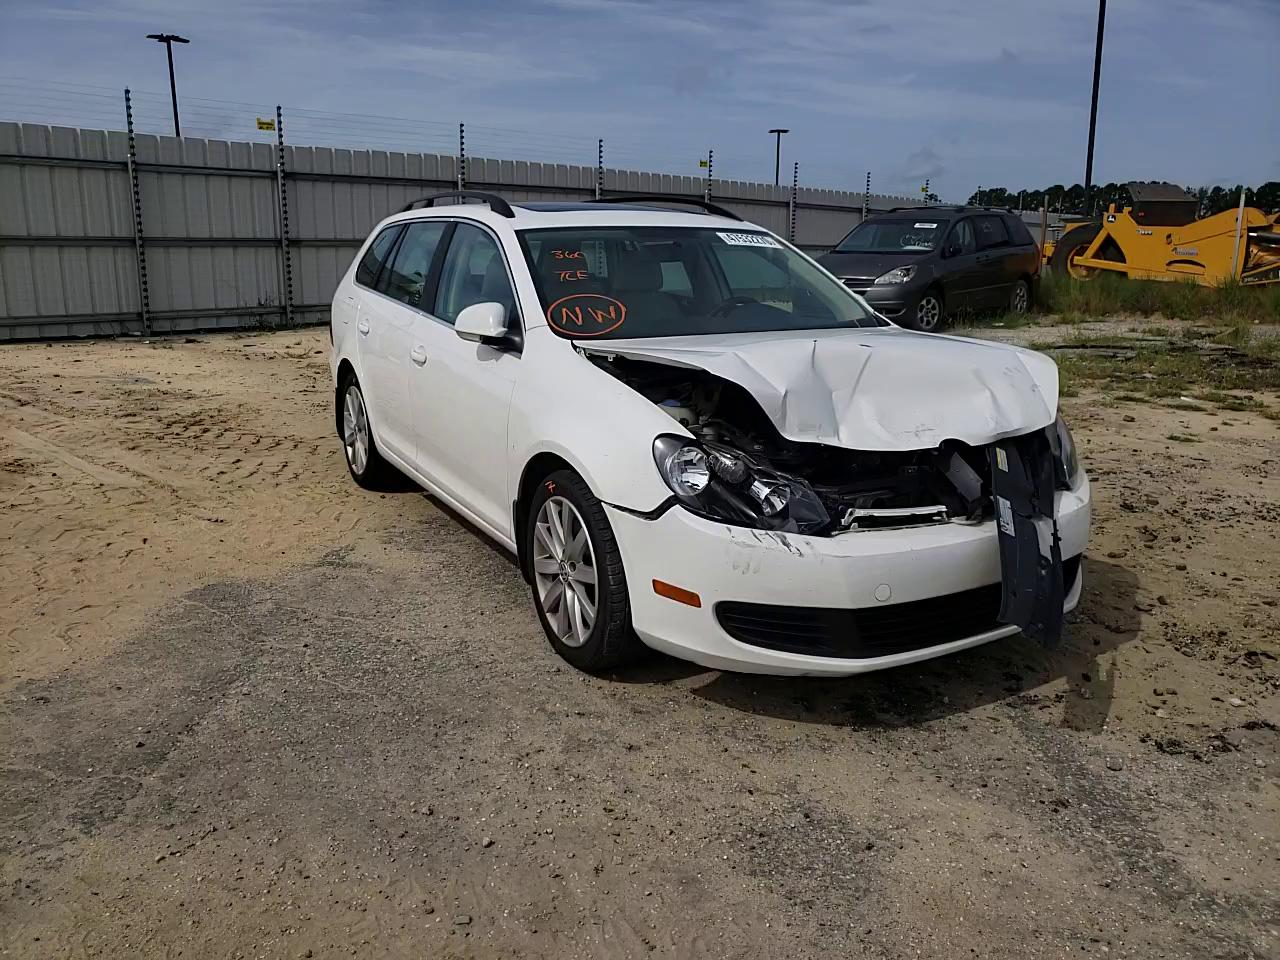 Volkswagen salvage cars for sale: 2013 Volkswagen Jetta TDI